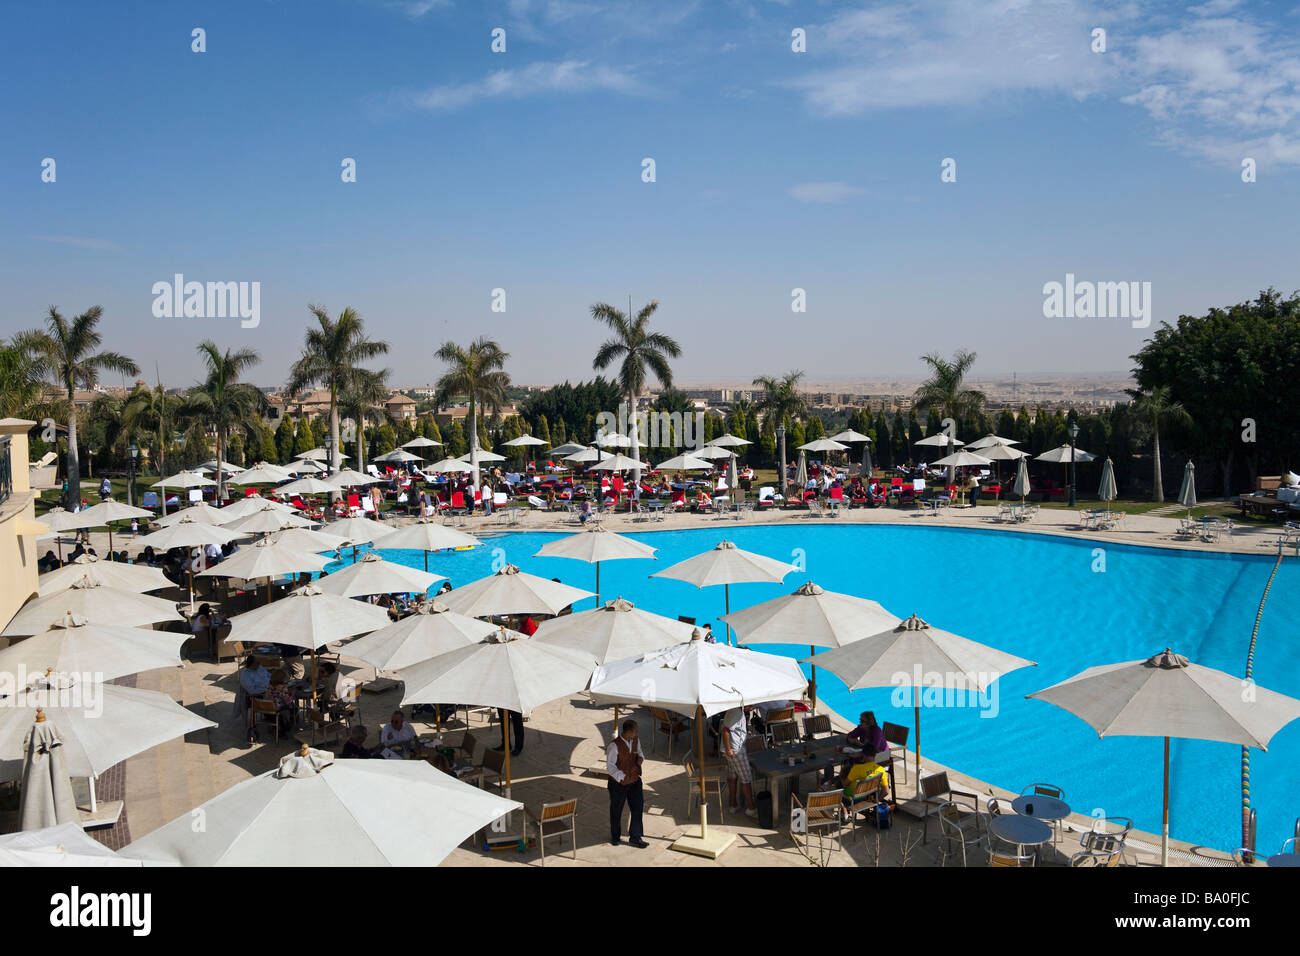 swimming pool and clubhouse, Katameya Heights golf club New Cairo, Egypt - Stock Image